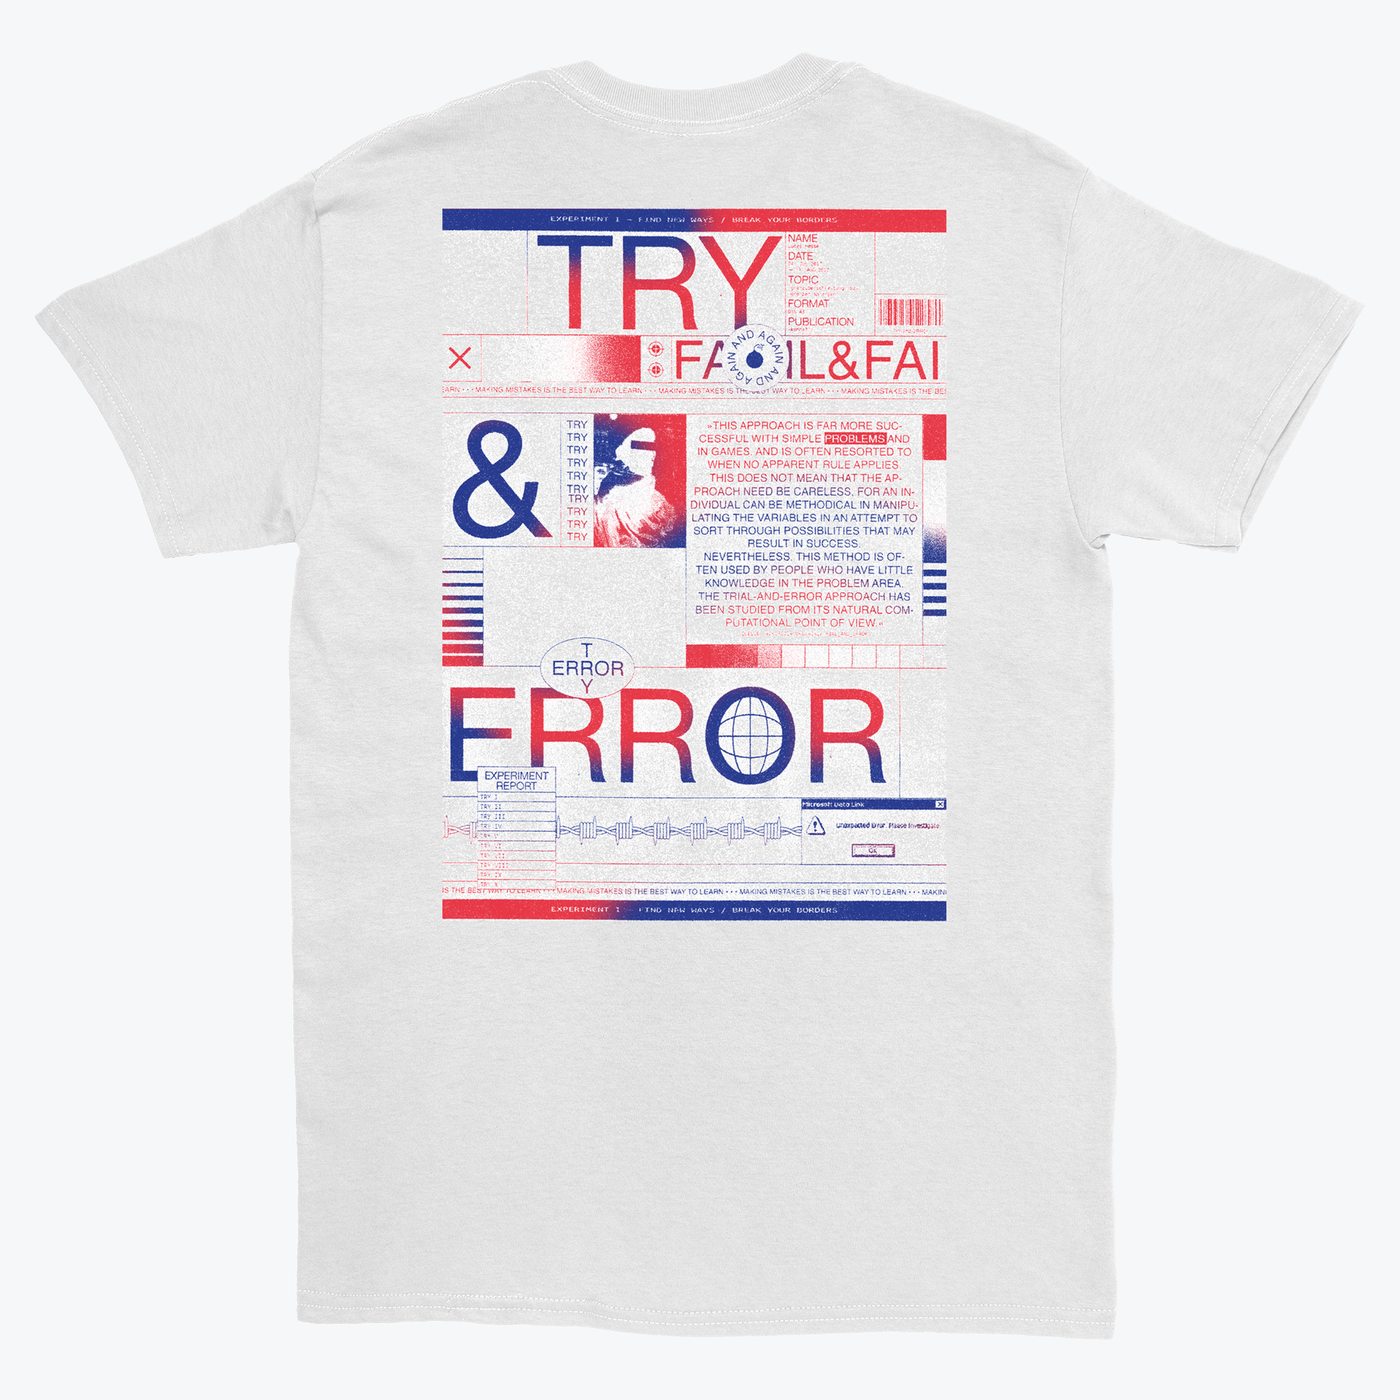 Lucas Hesse 'Try and Error' T-shirt